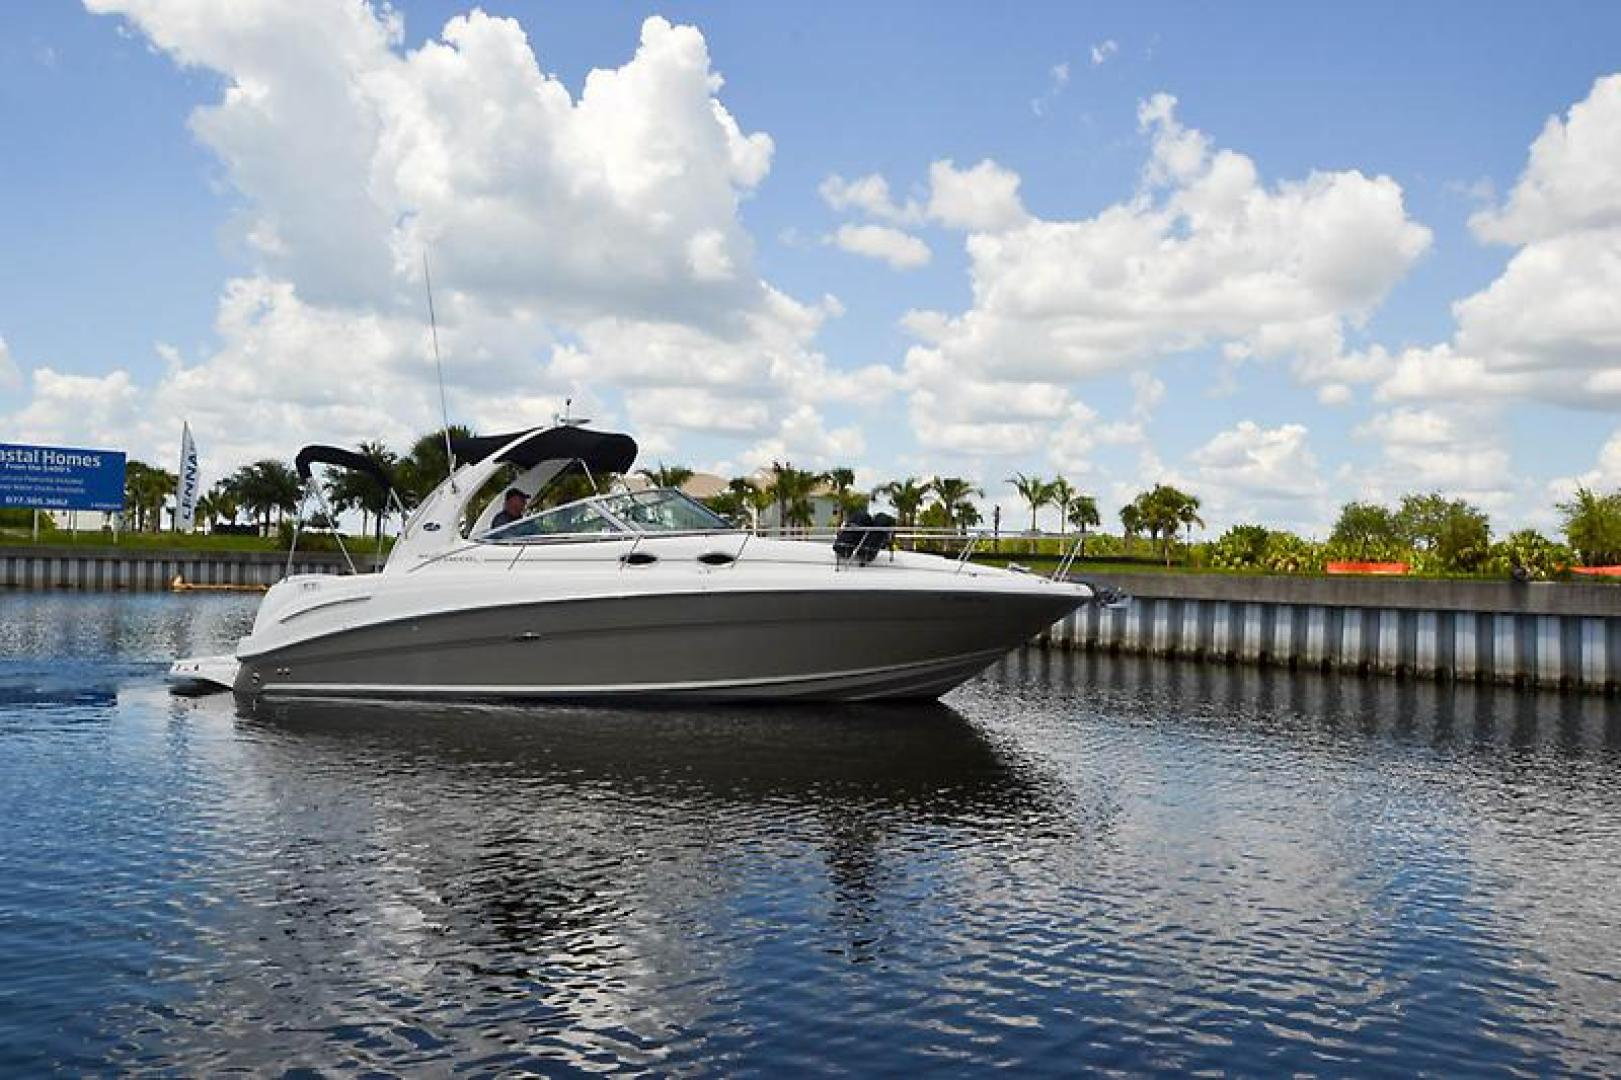 2006 Sea Ray 300 Sundancer-14-2.jpg